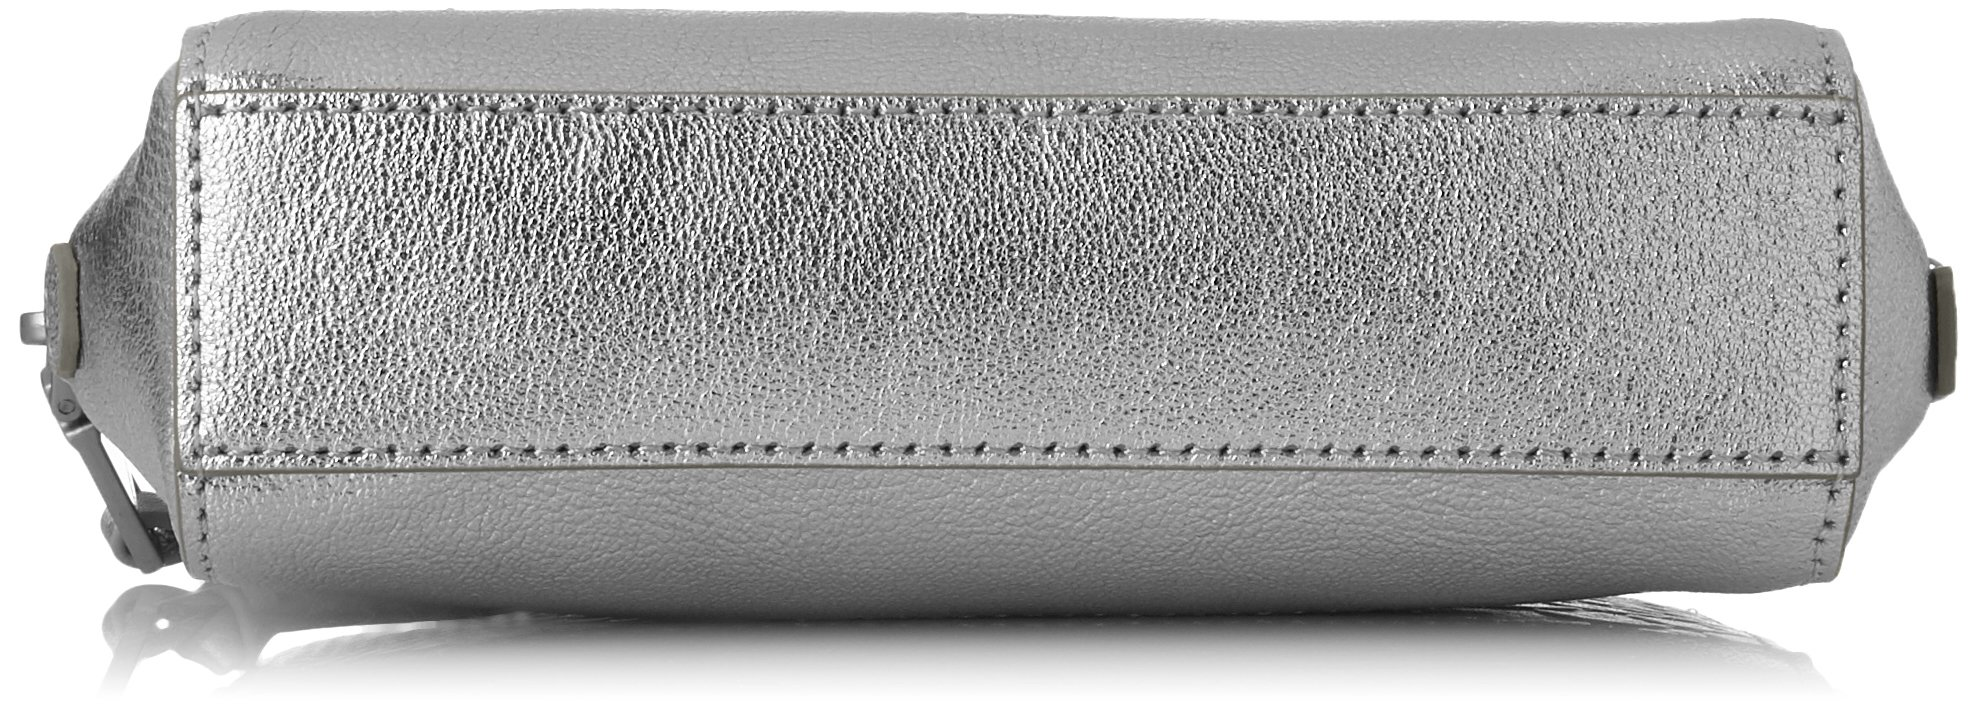 Liebeskind Berlin Women's Rhinebeck Metallic Leather Cosmetic Case, Silver by Liebeskind Berlin (Image #4)